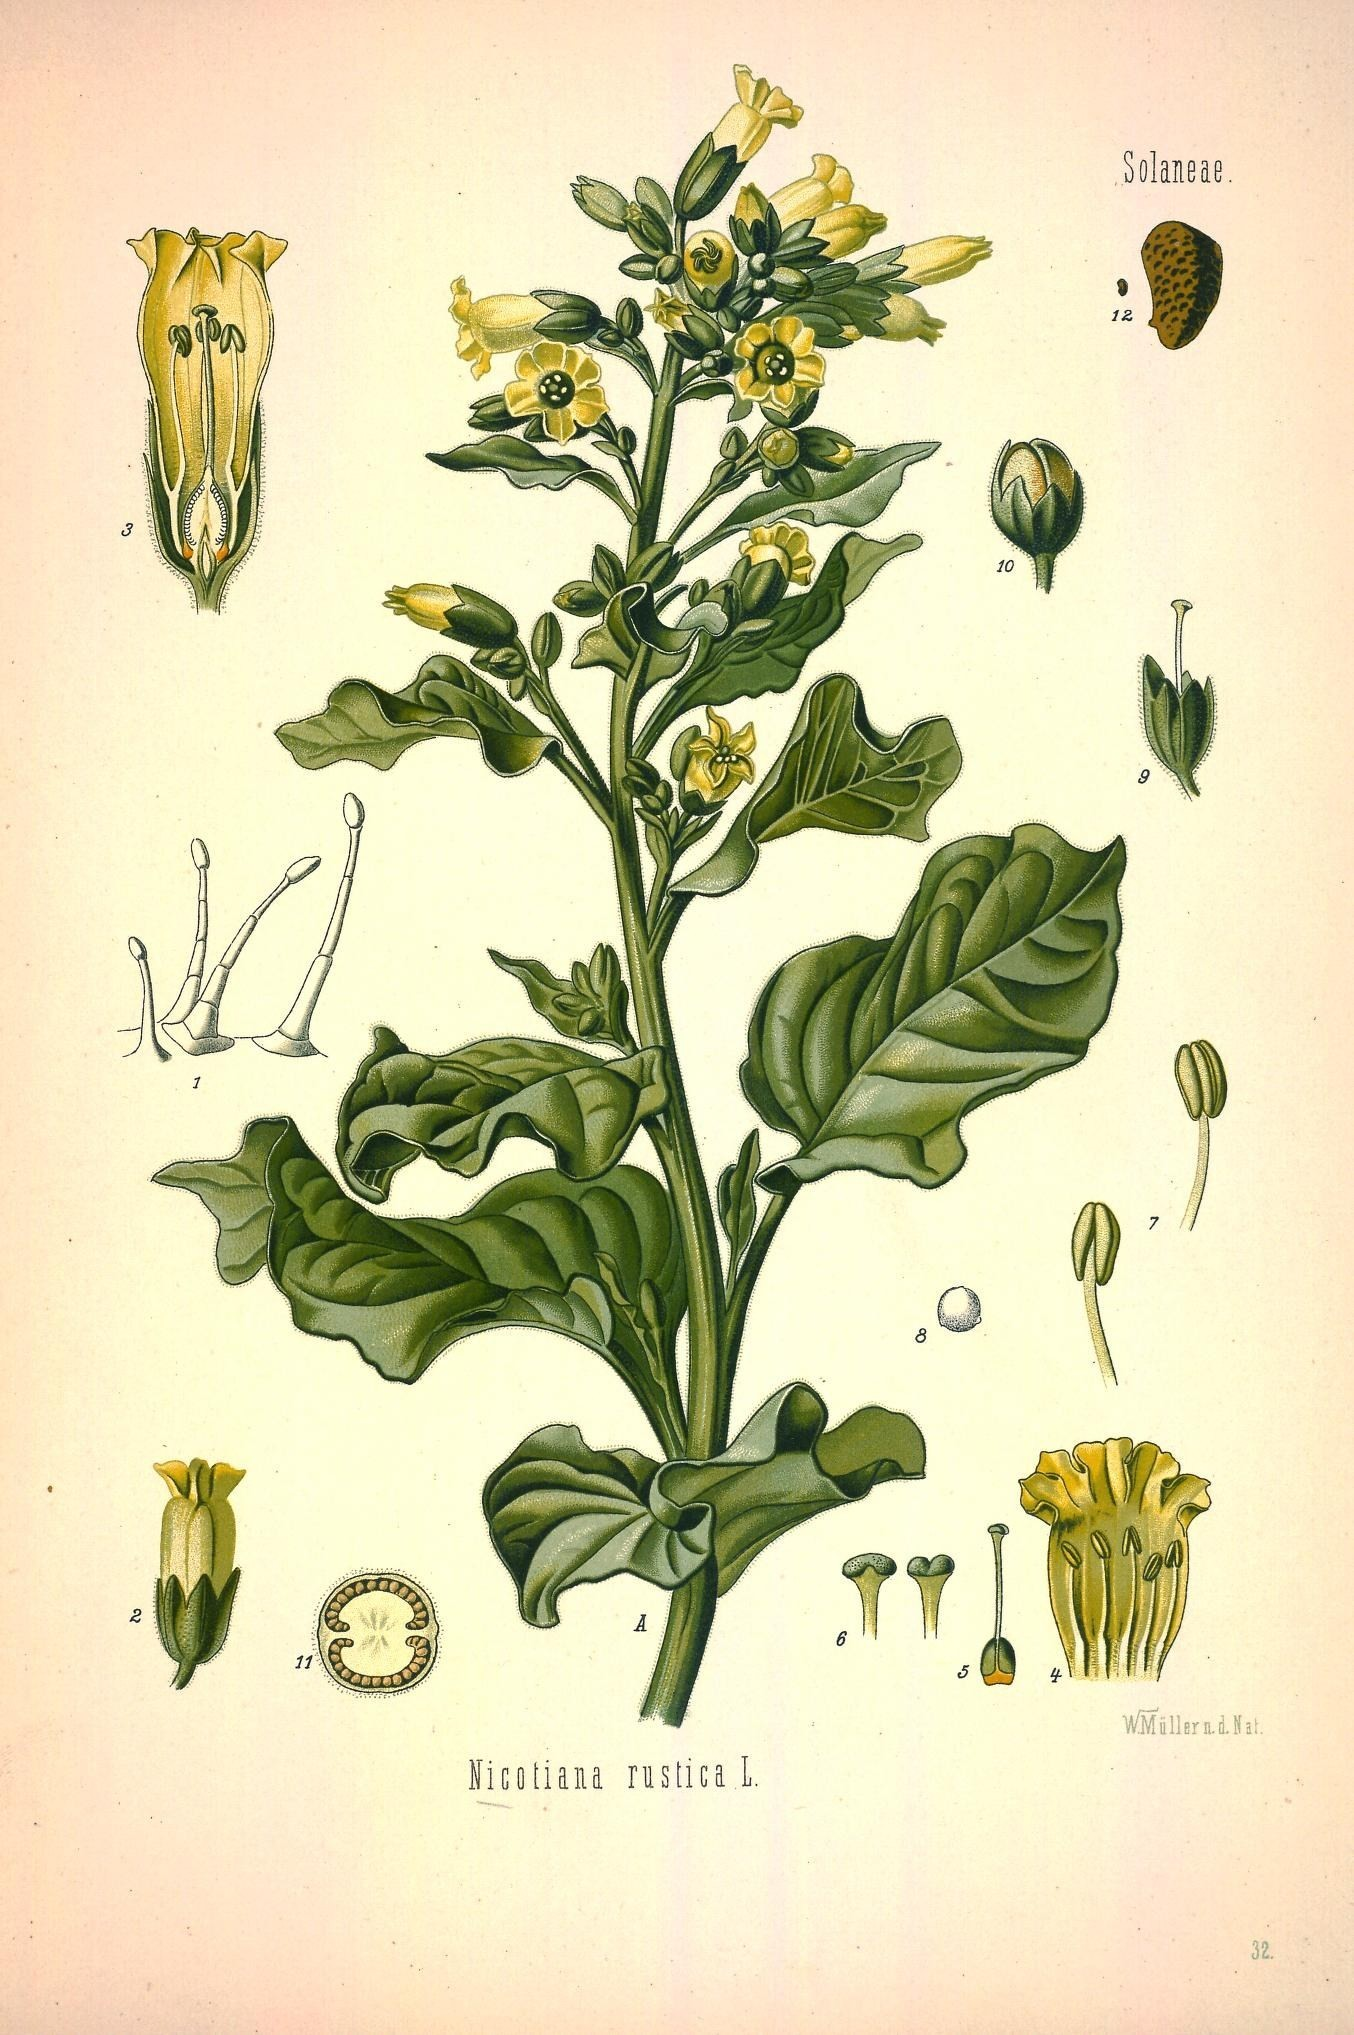 Image of Aztec tobacco